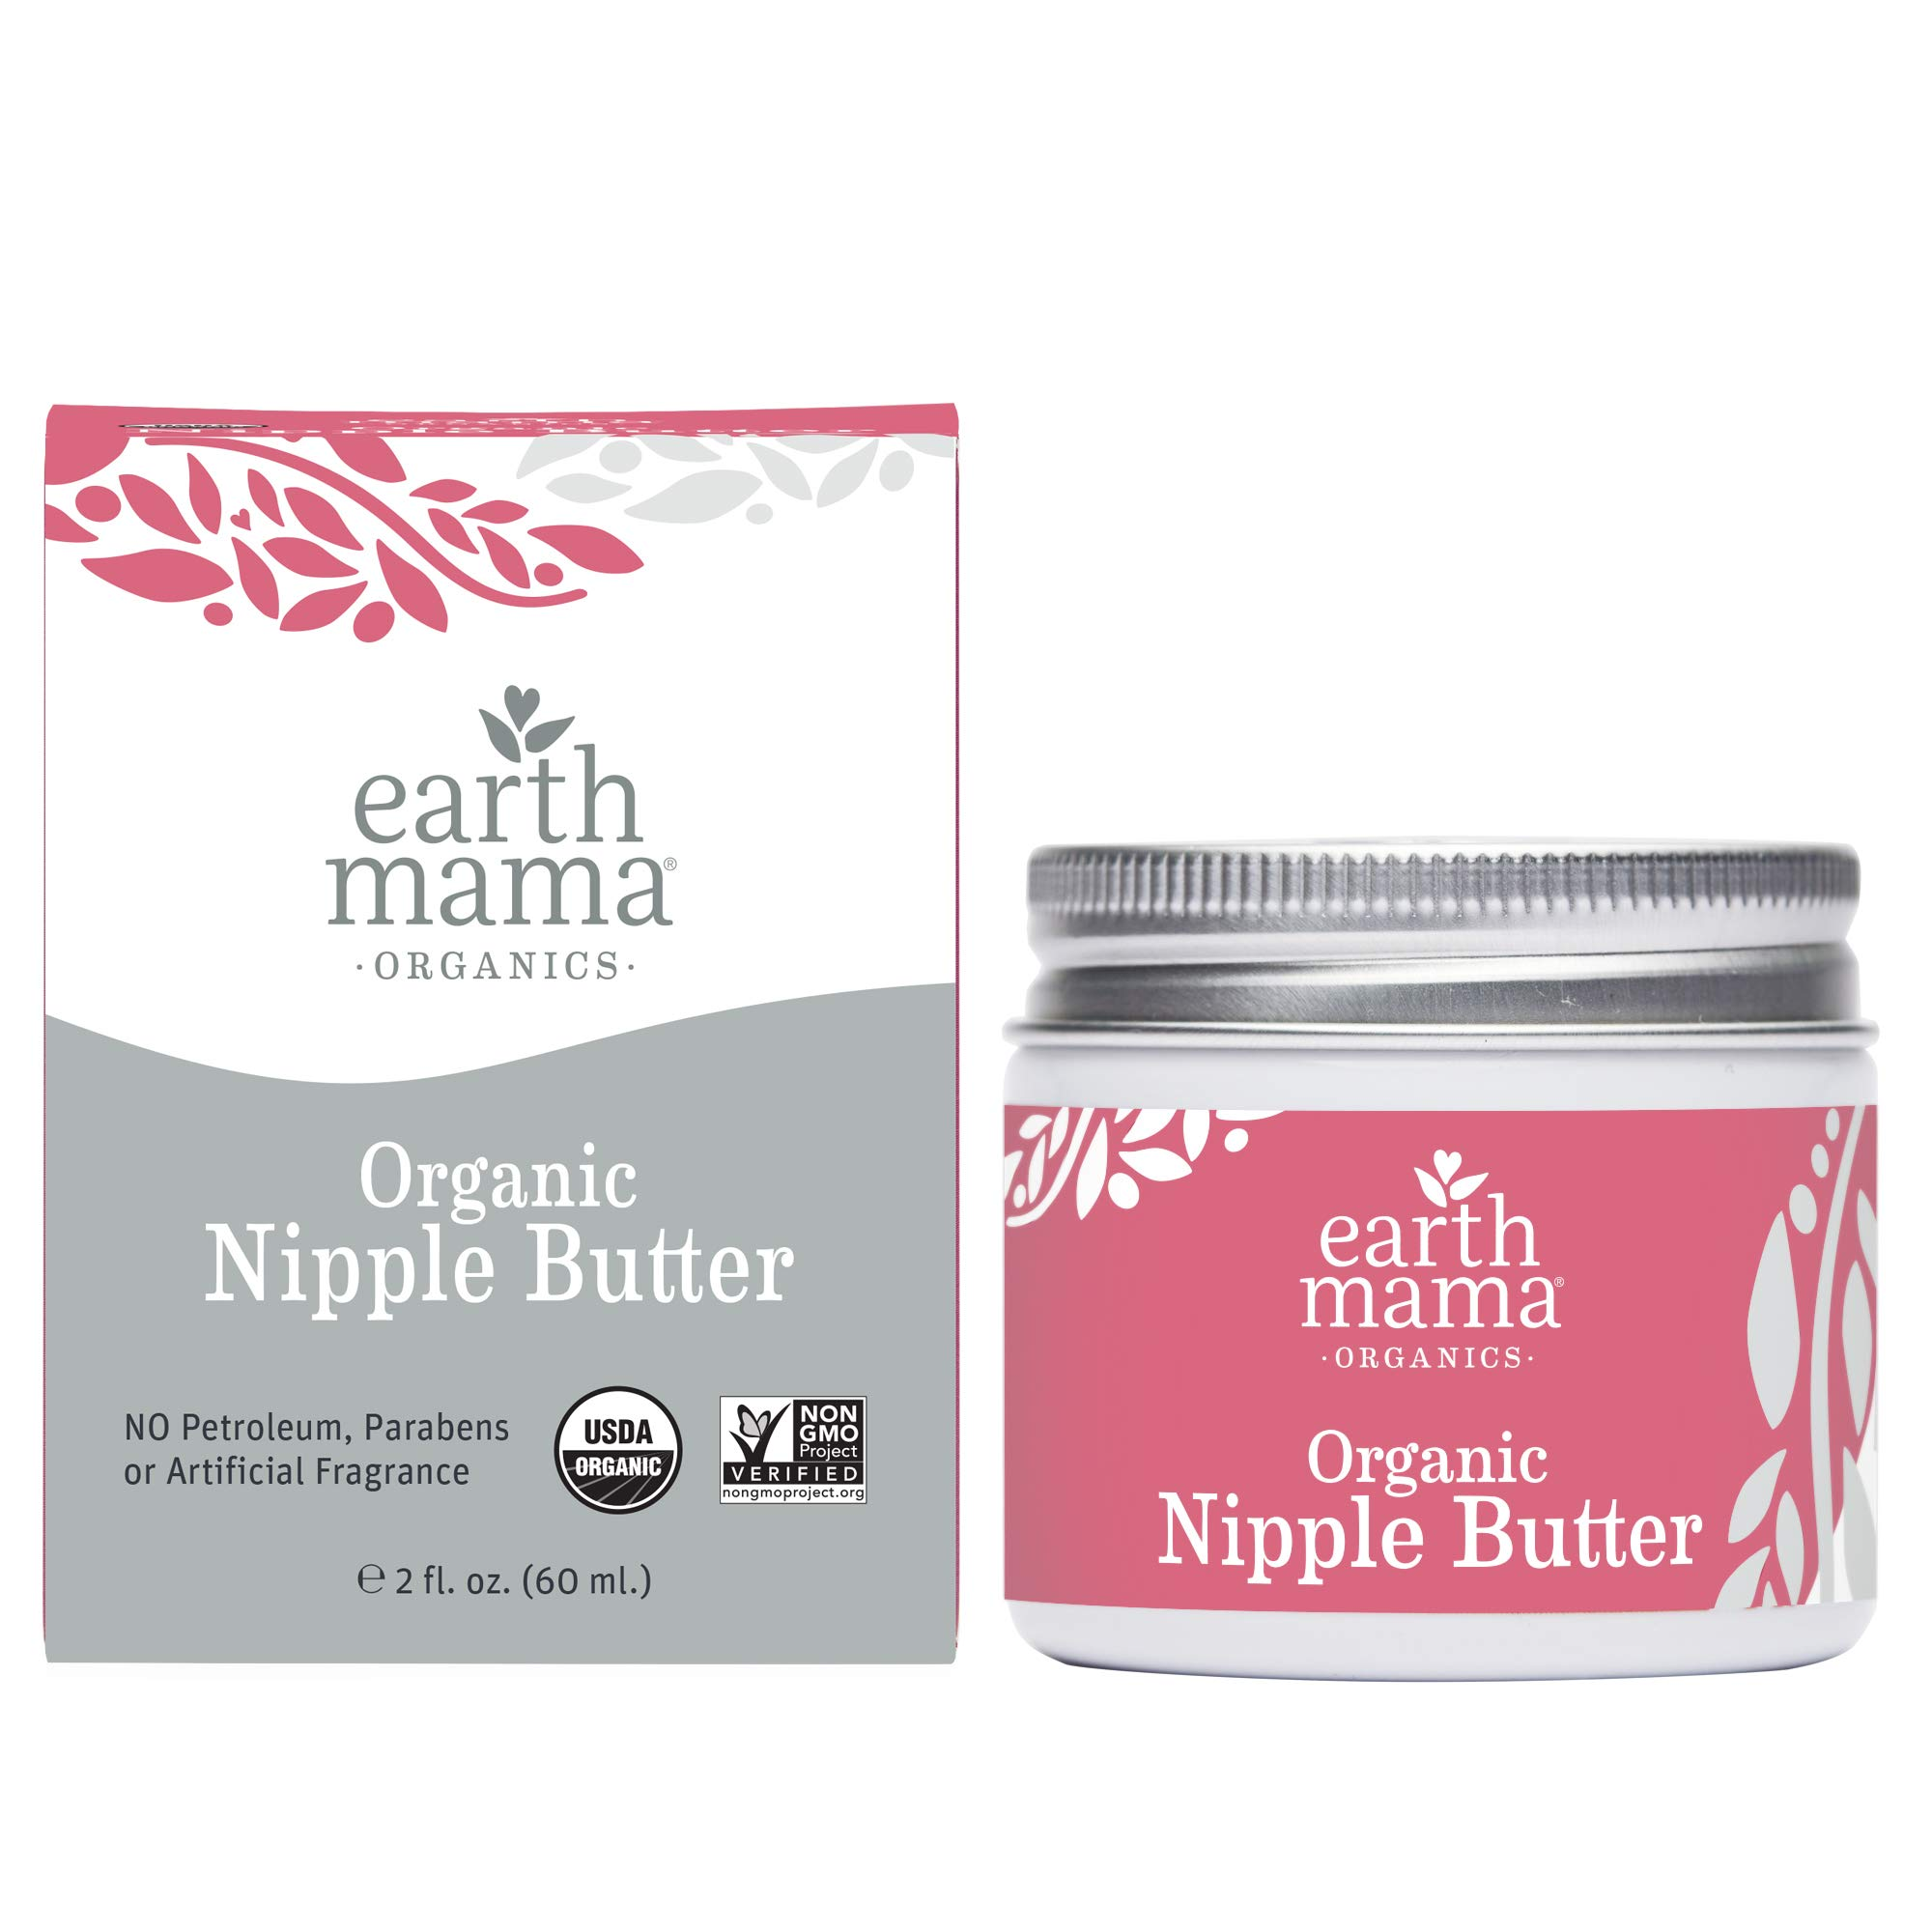 Organic Nipple Butter Breastfeeding Cream by Earth Mama | Lanolin-free, Safe for Nursing & Dry Skin, Non-GMO Project Verified, 2-Fluid Ounce (Packaging May Vary) by Earth Mama